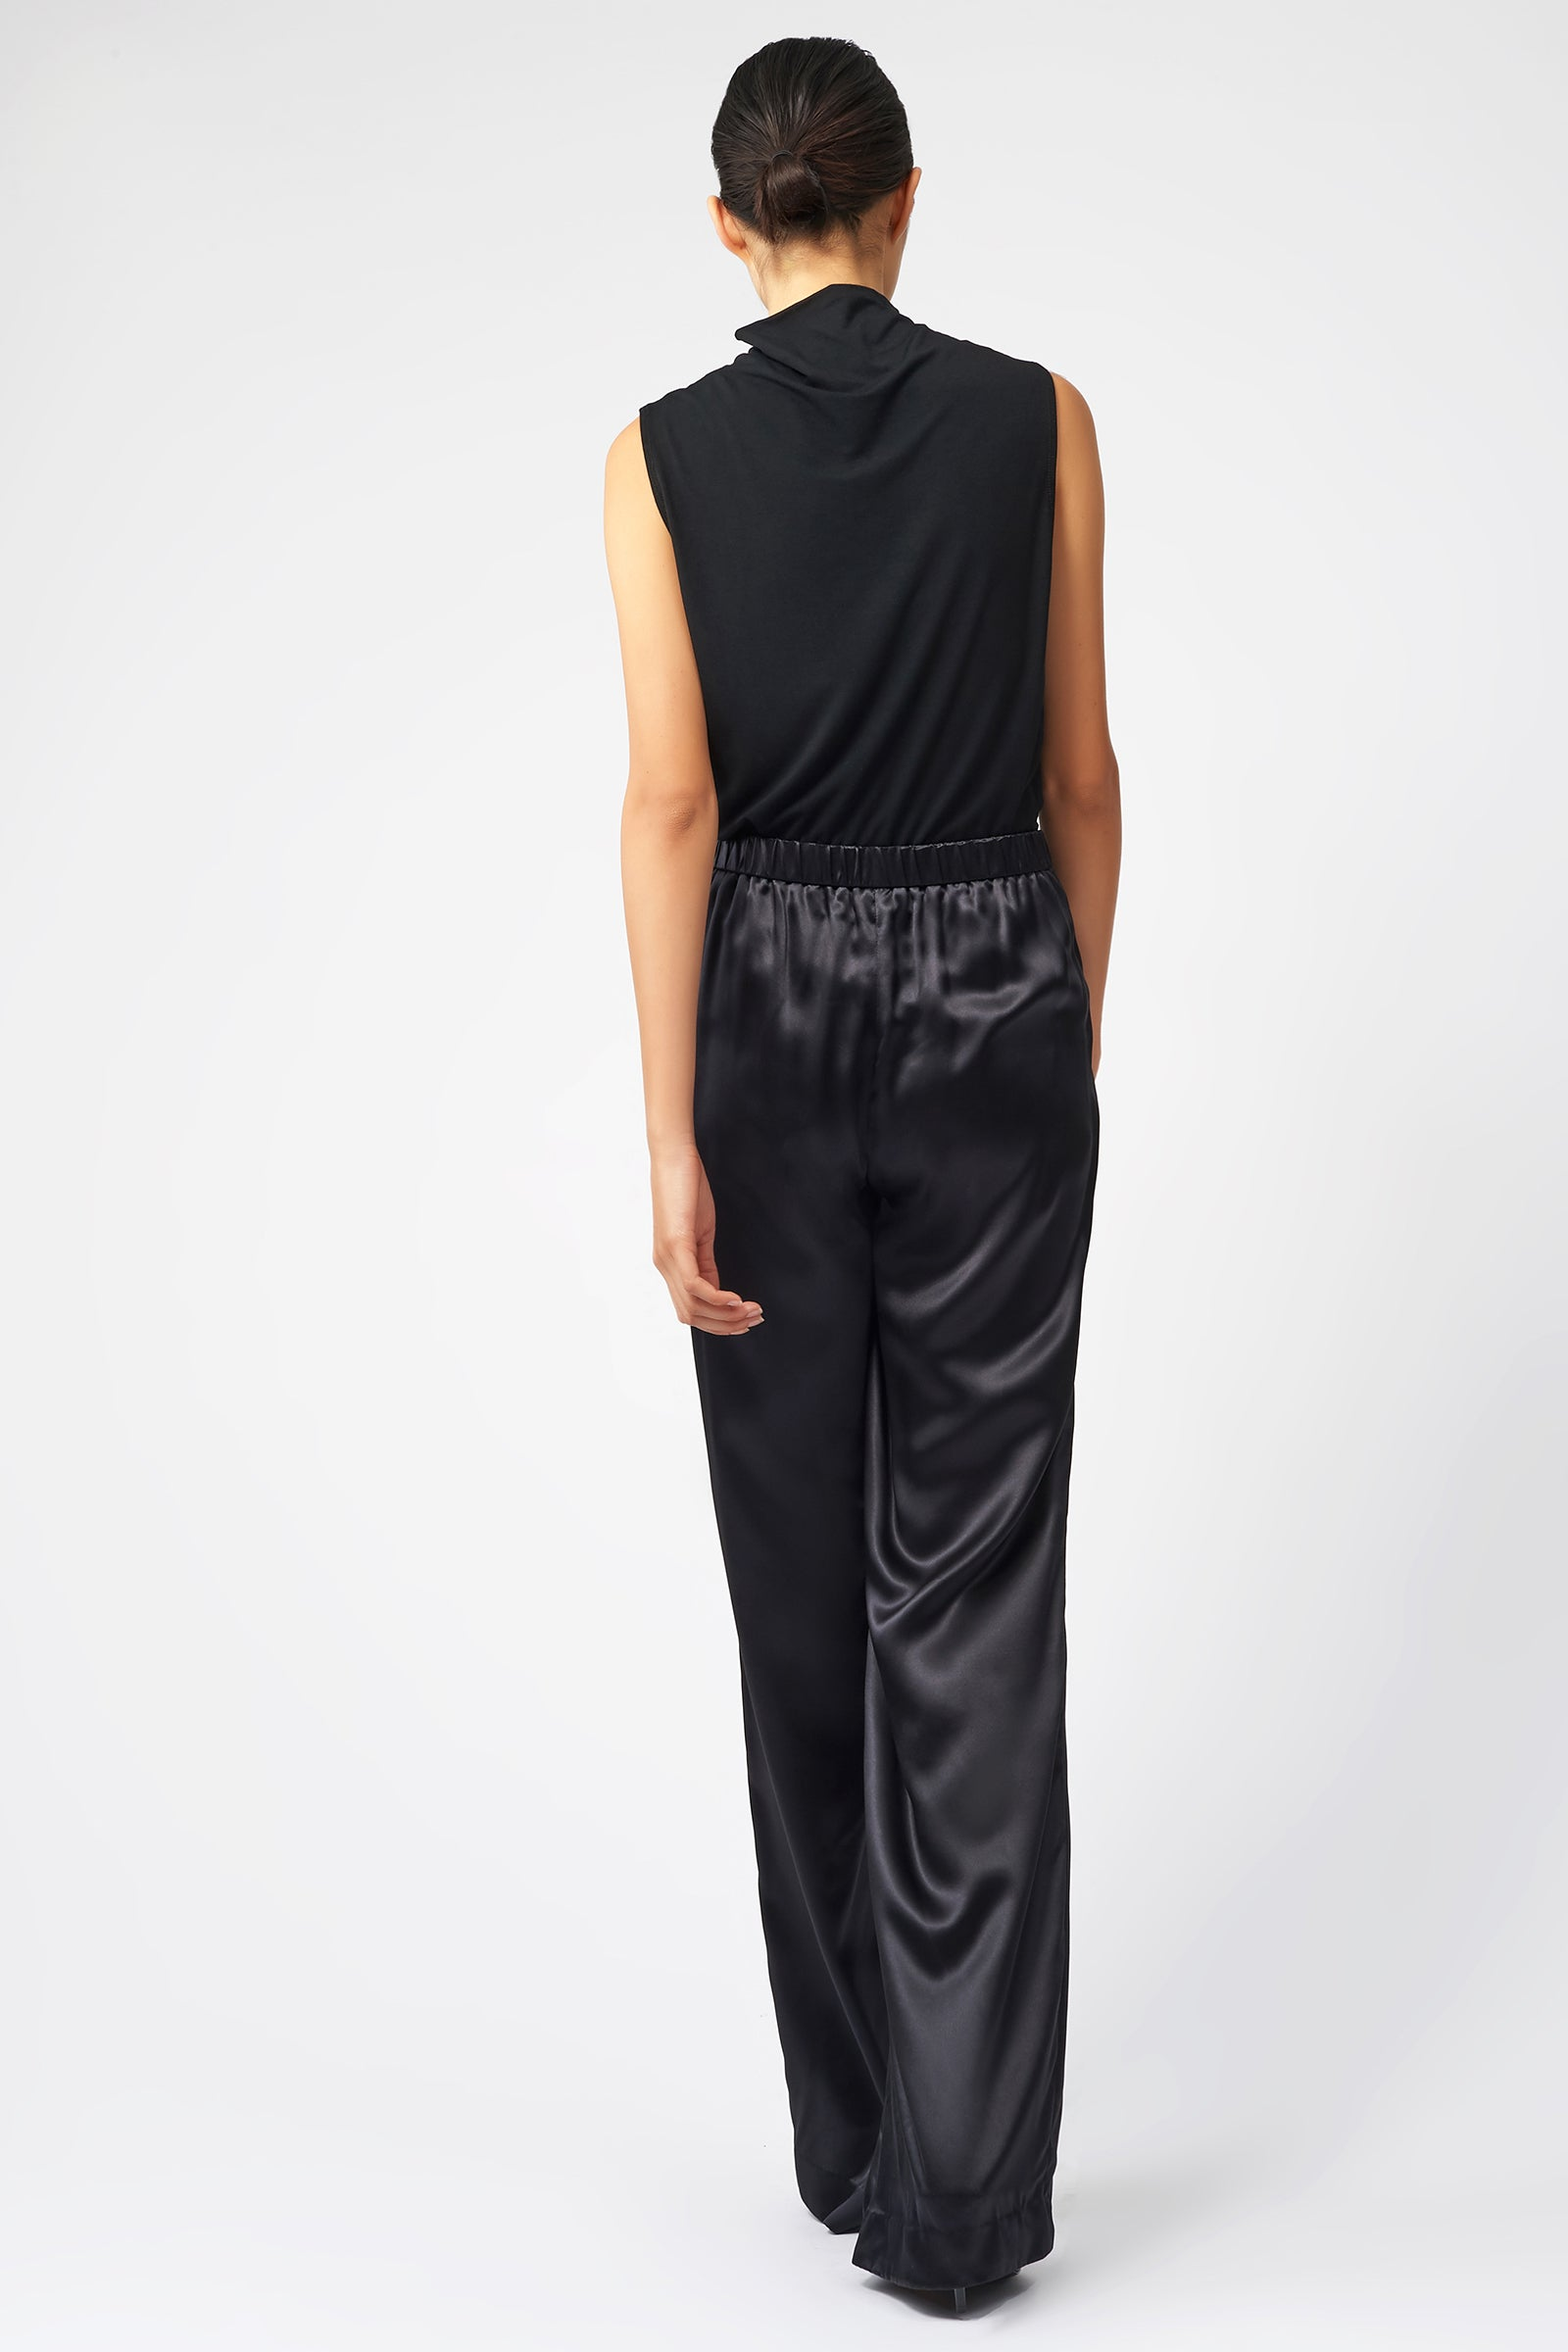 Kal Rieman Classic Silk Trouser in Black on Model Full Back View